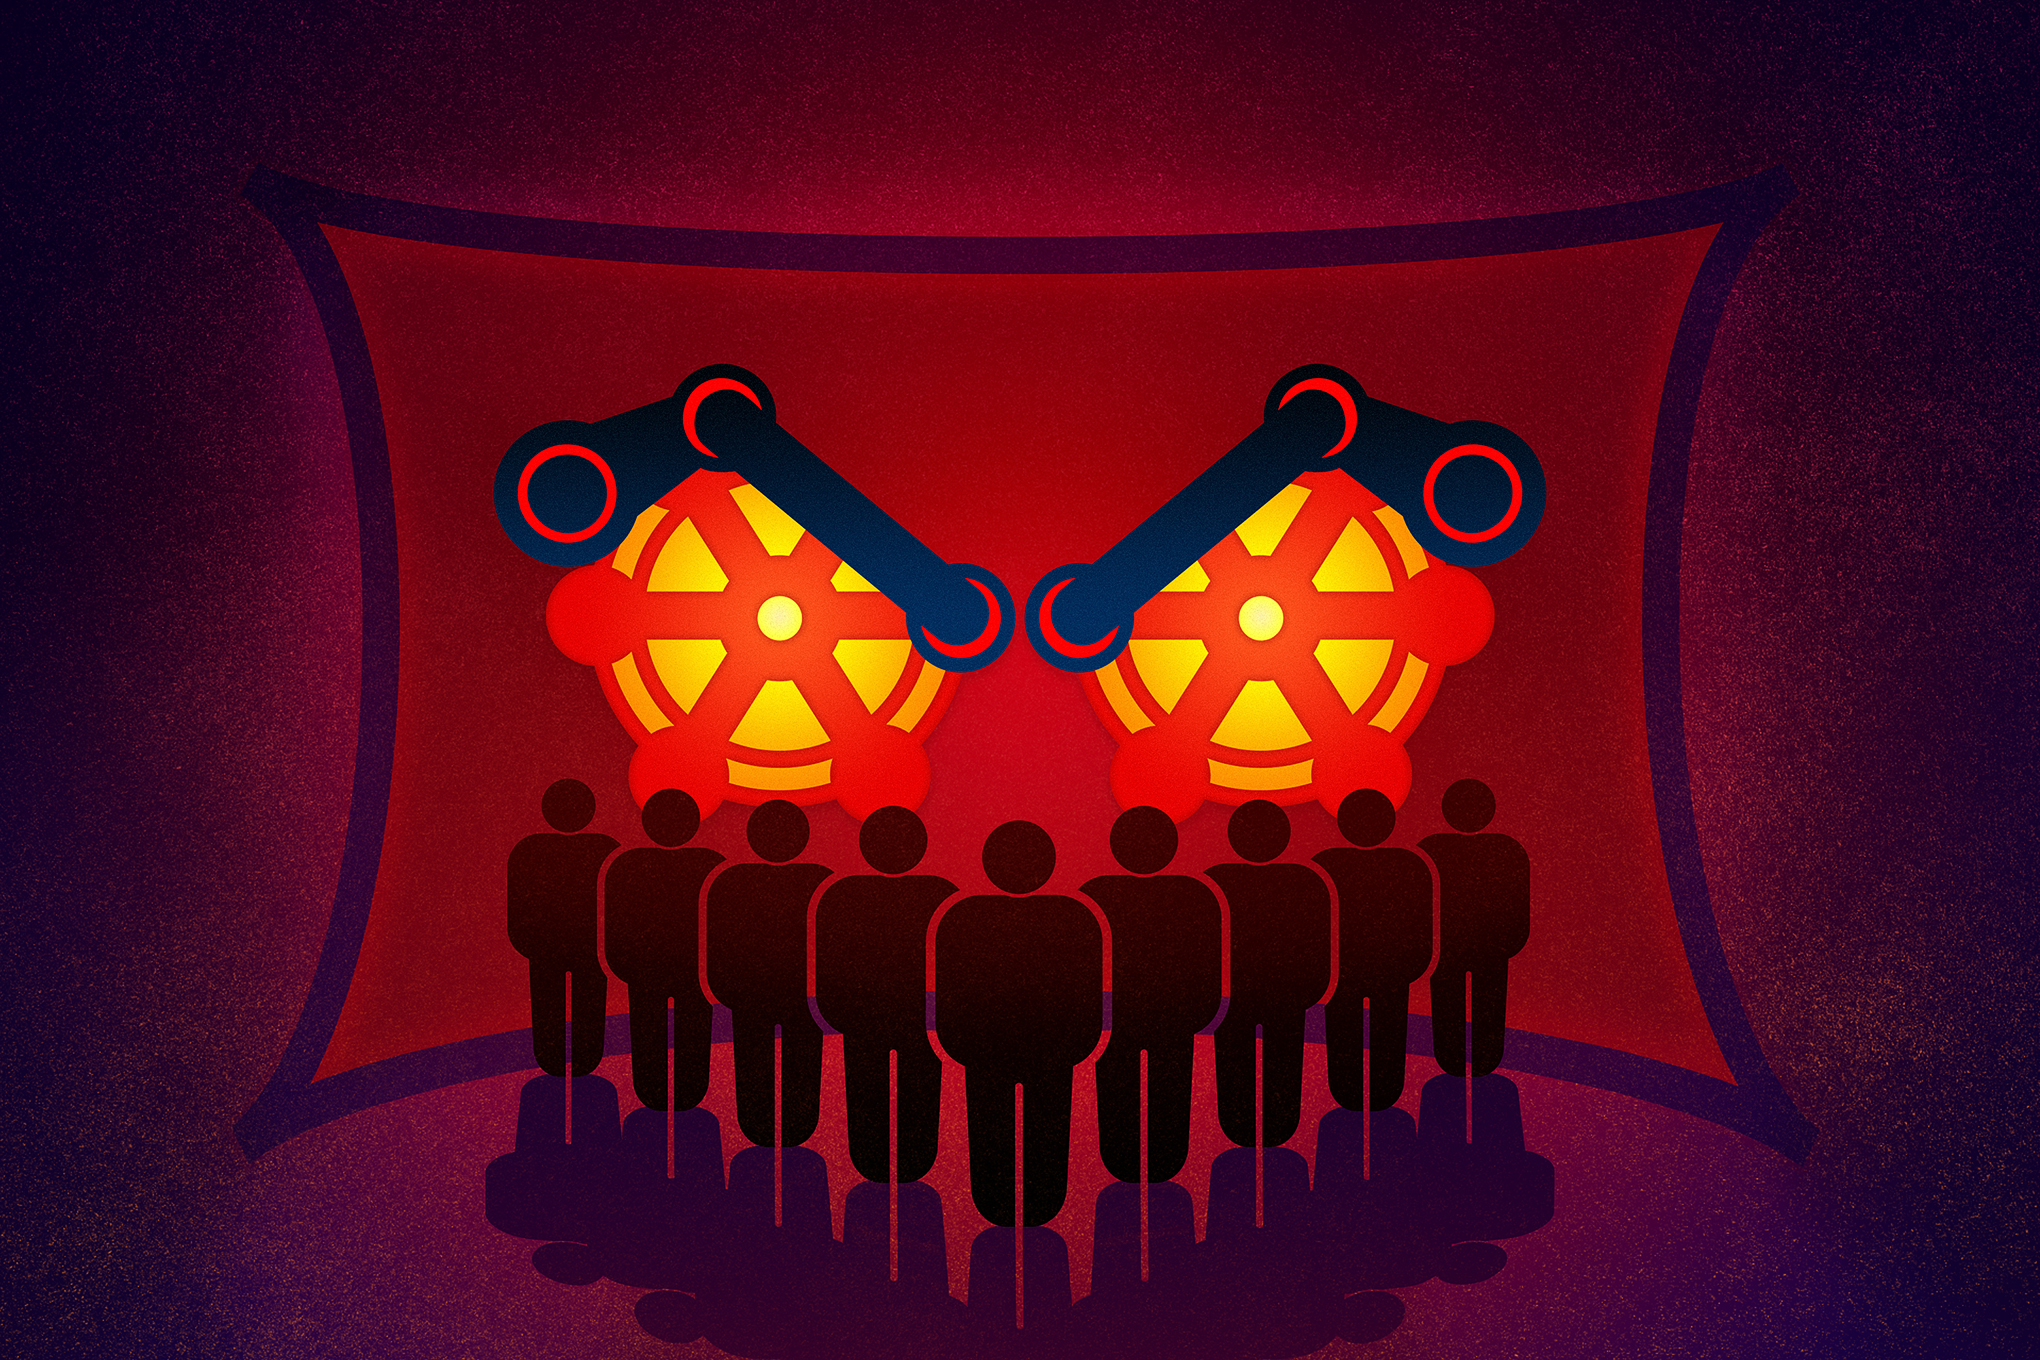 illustration of a bunch of human figures standing in front of Steam logos in a red room